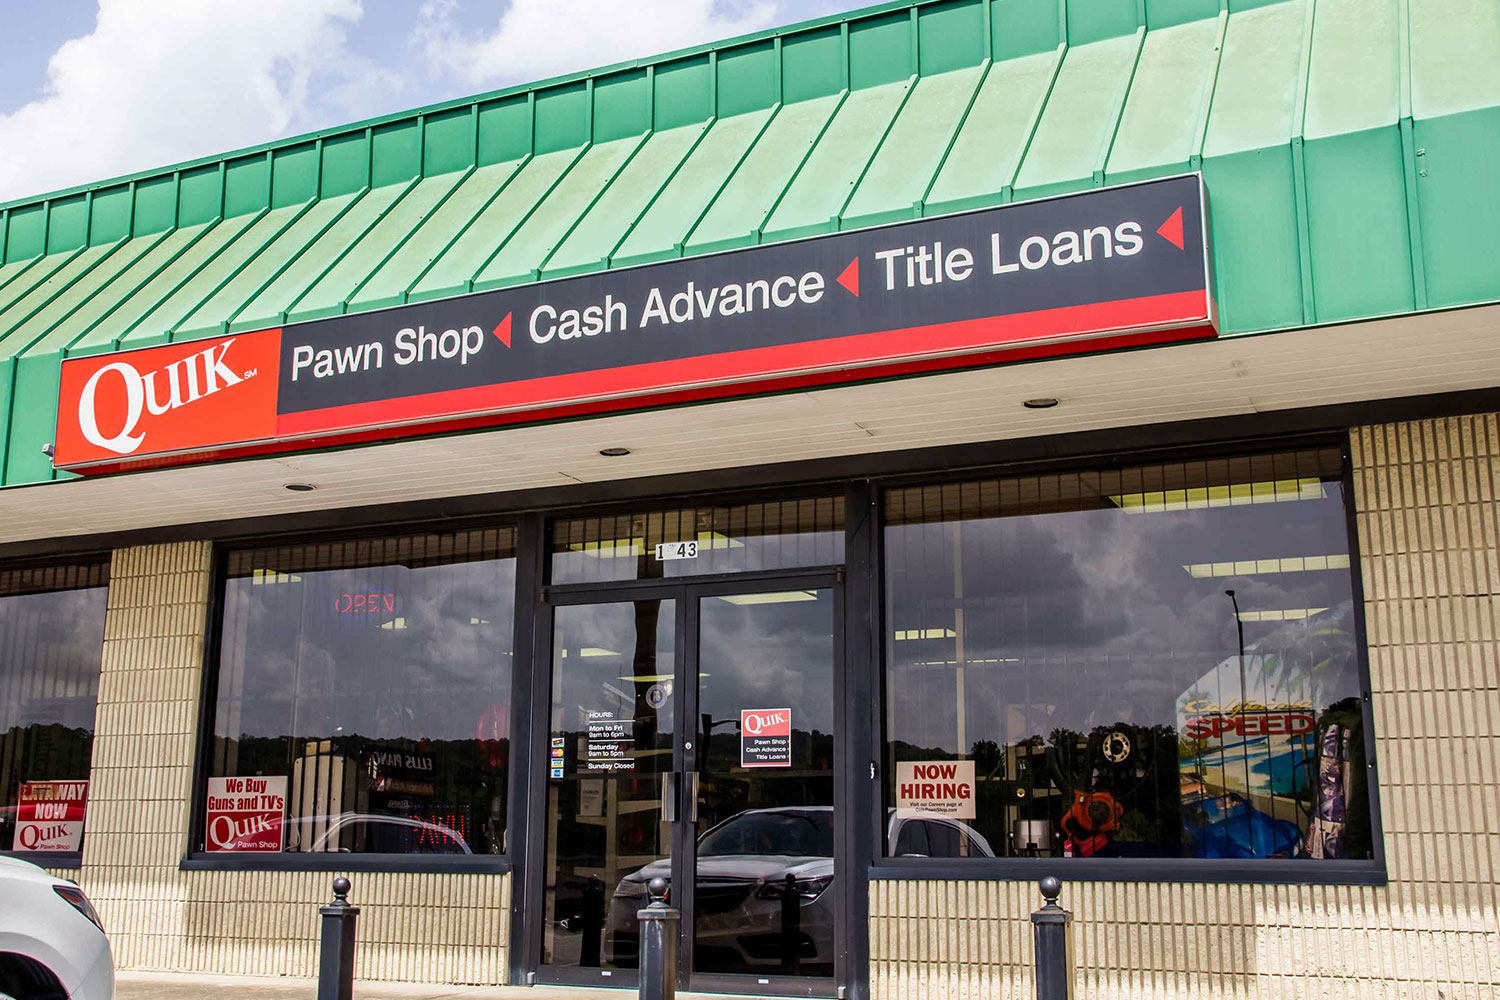 Quik pawn shop buy or sell your pawn in hoover al 35216 for Jewelry pawn shops birmingham al